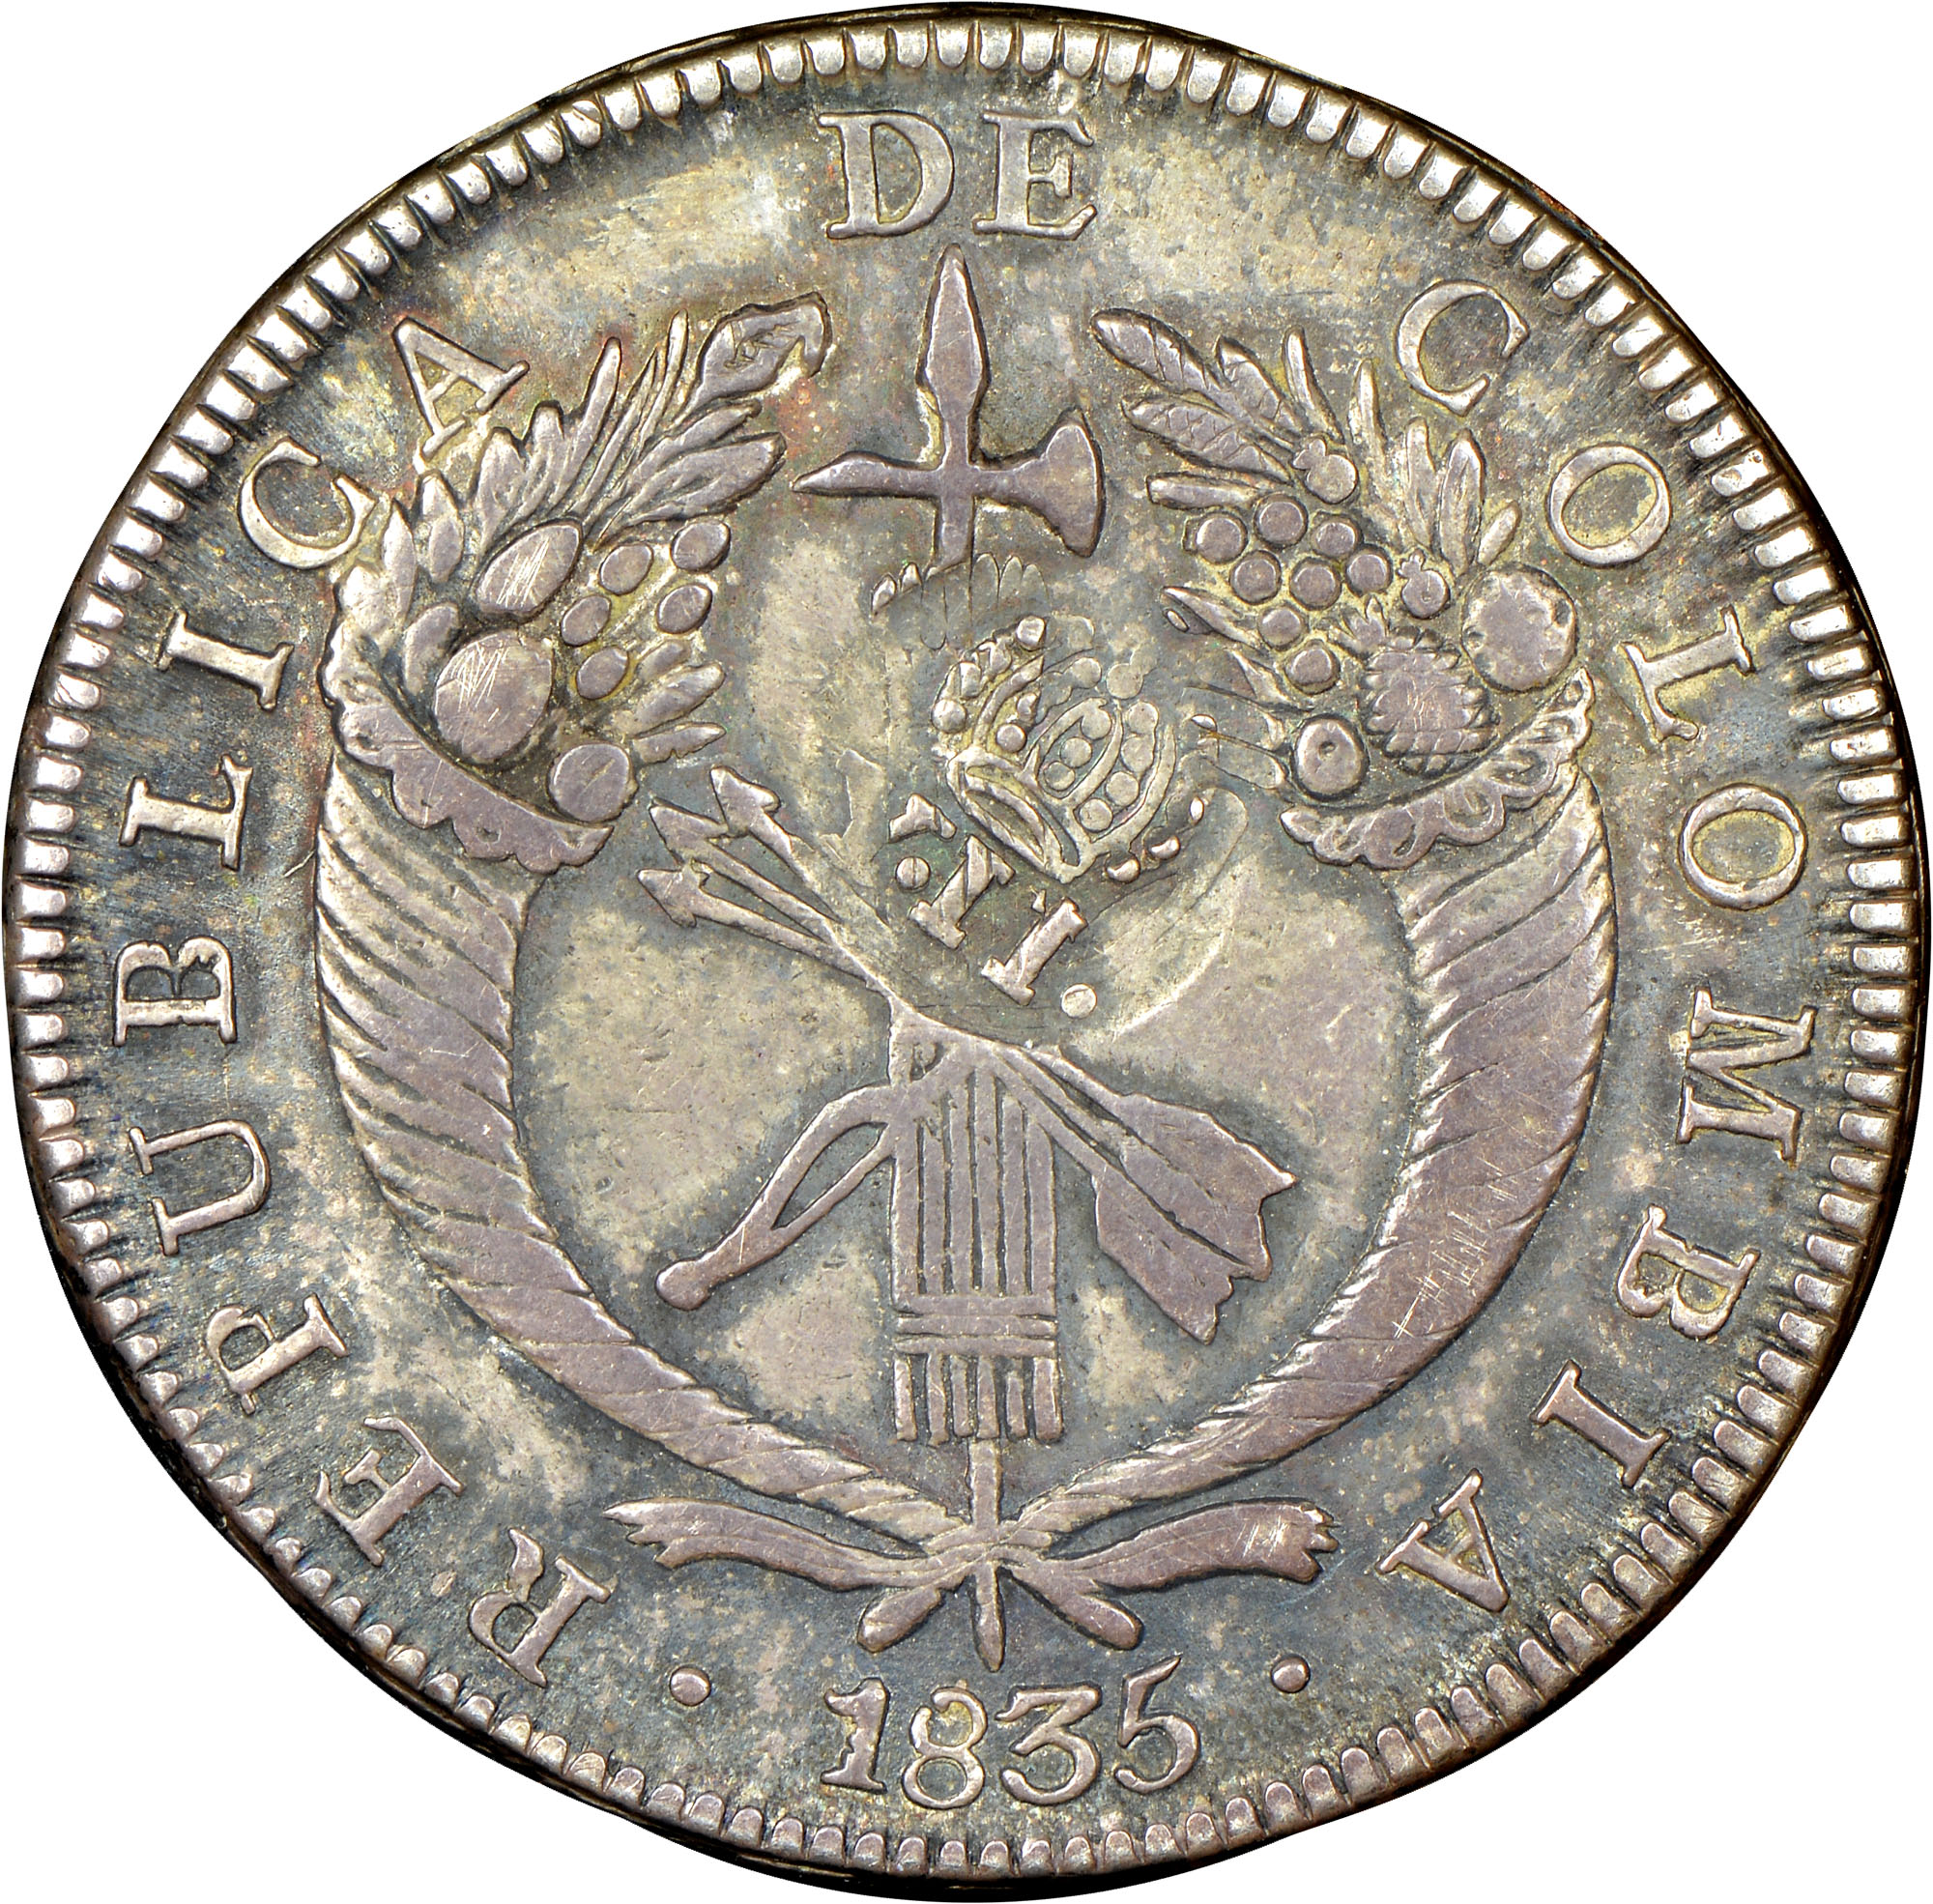 1834-1836 Colombia 8 Reales obverse